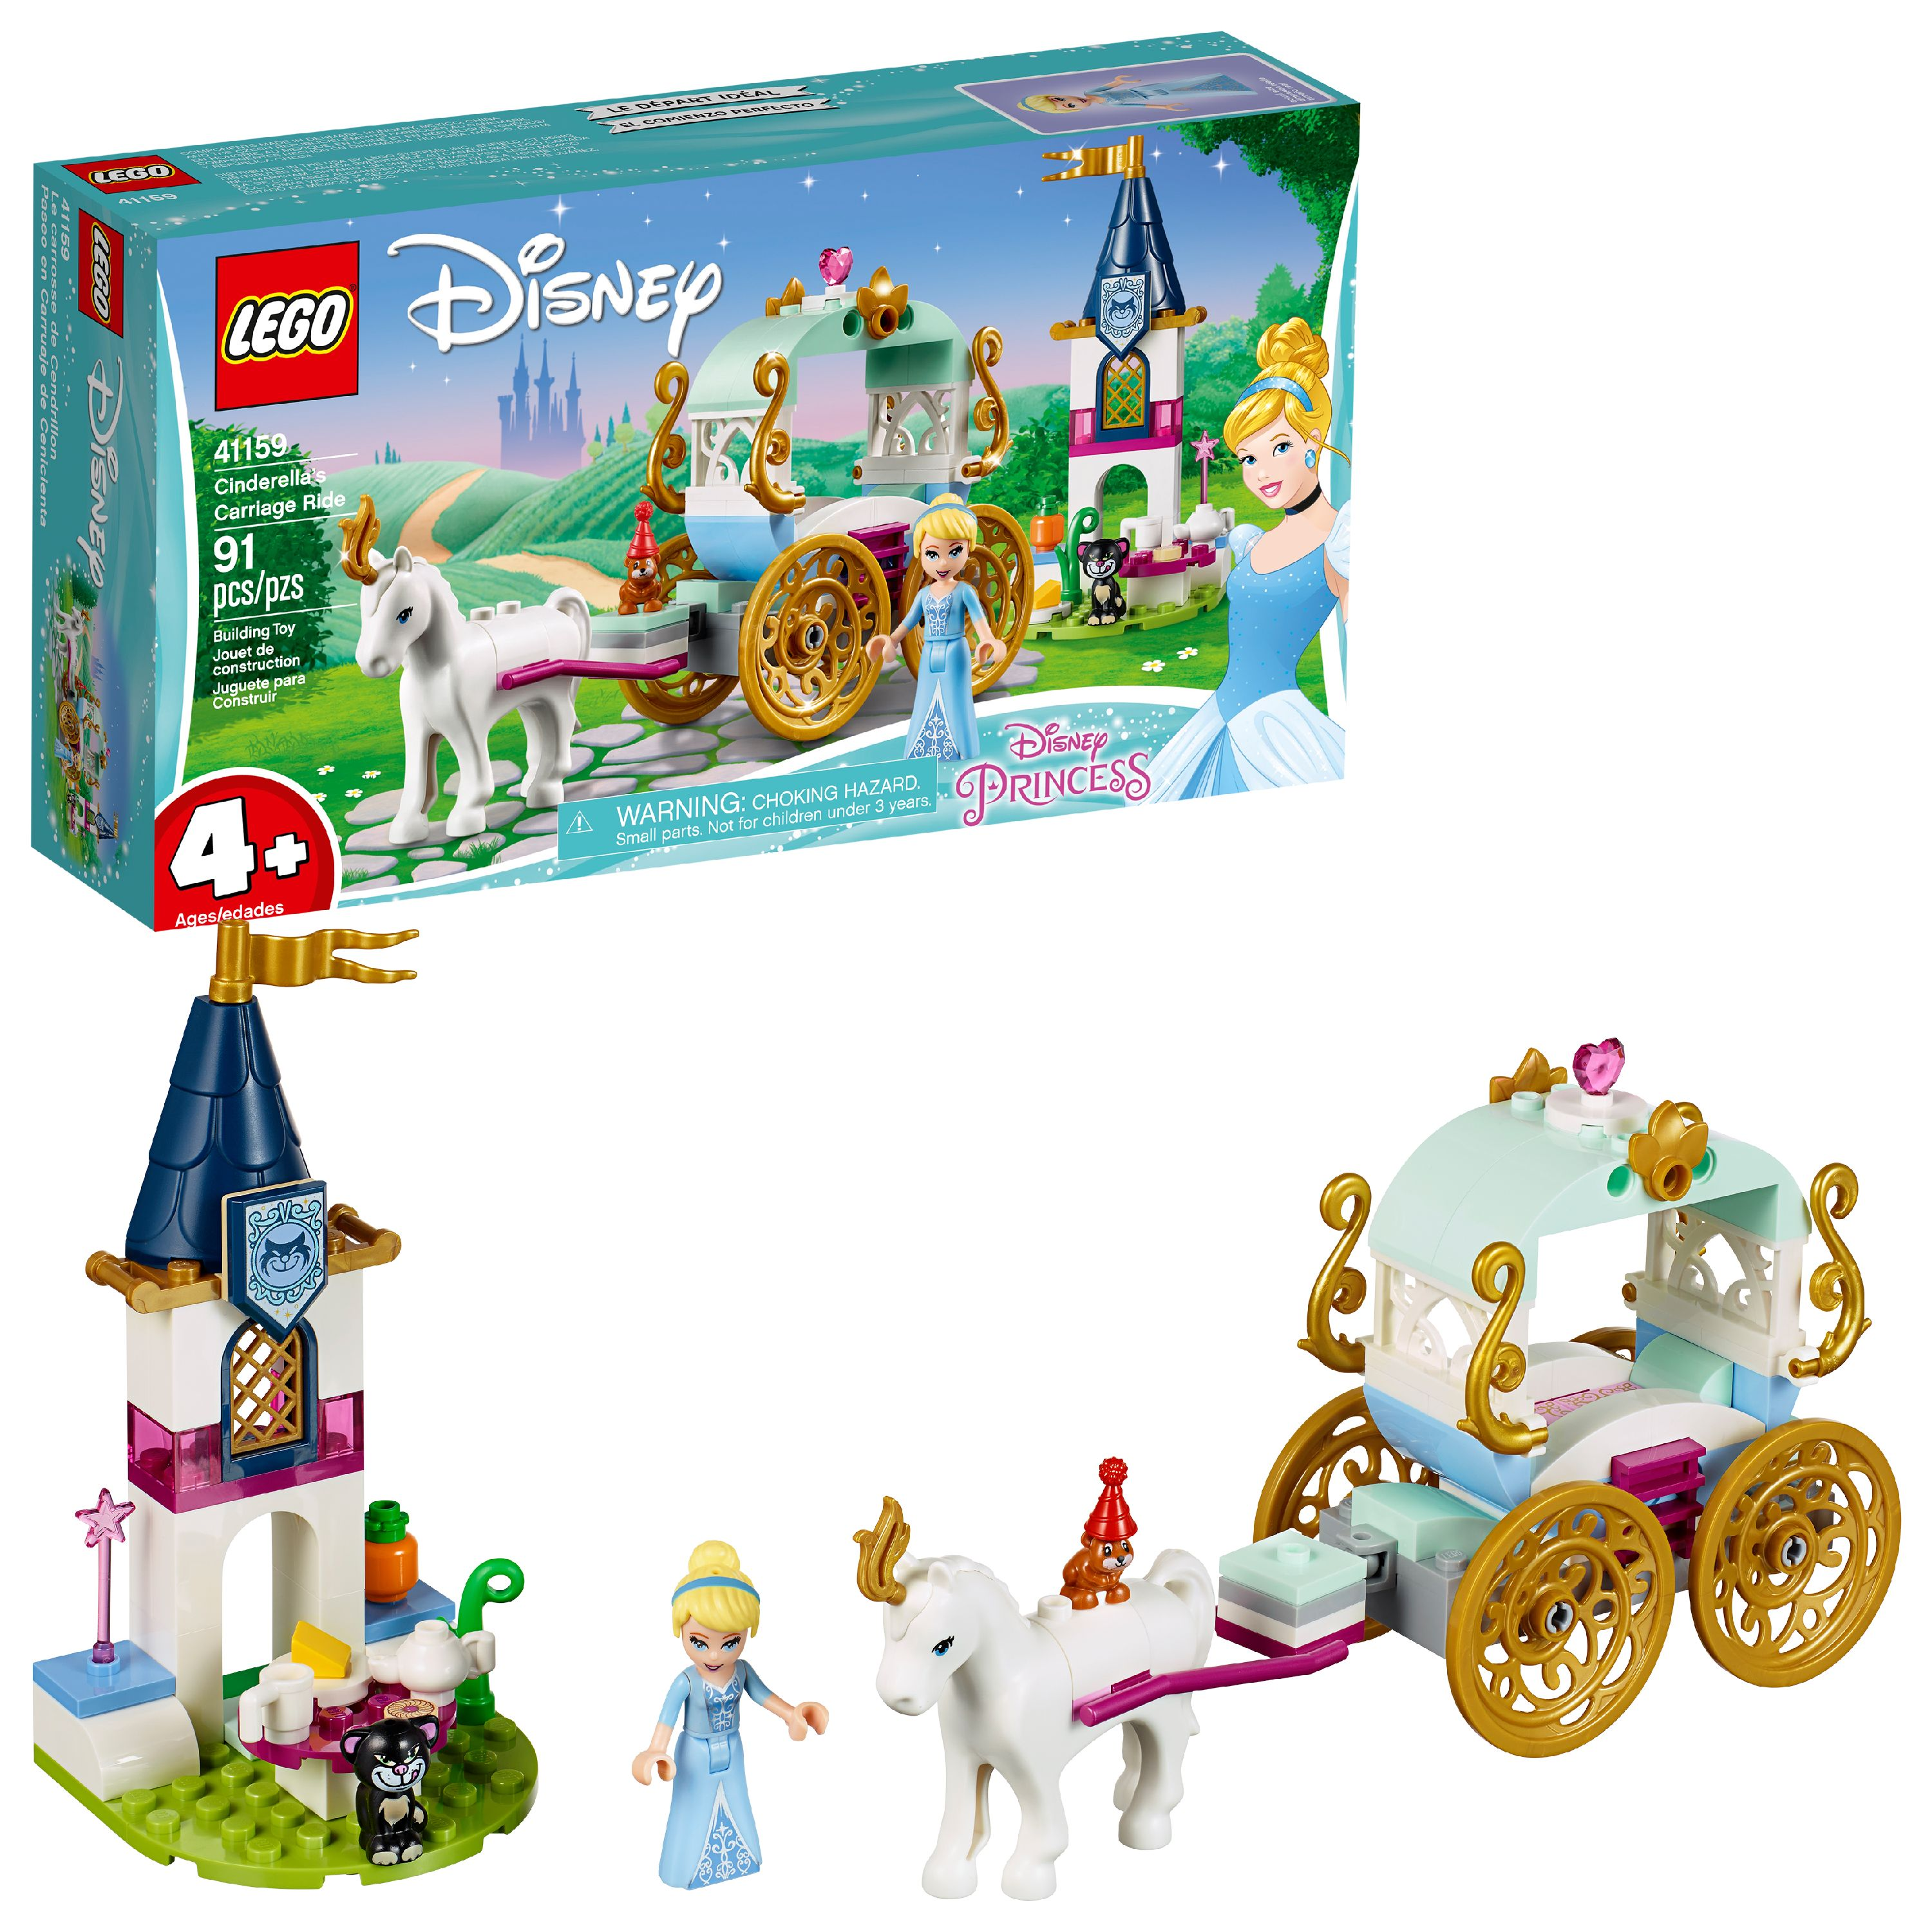 LEGO Disney Princess Cinderella's Carriage Ride Toy 41159